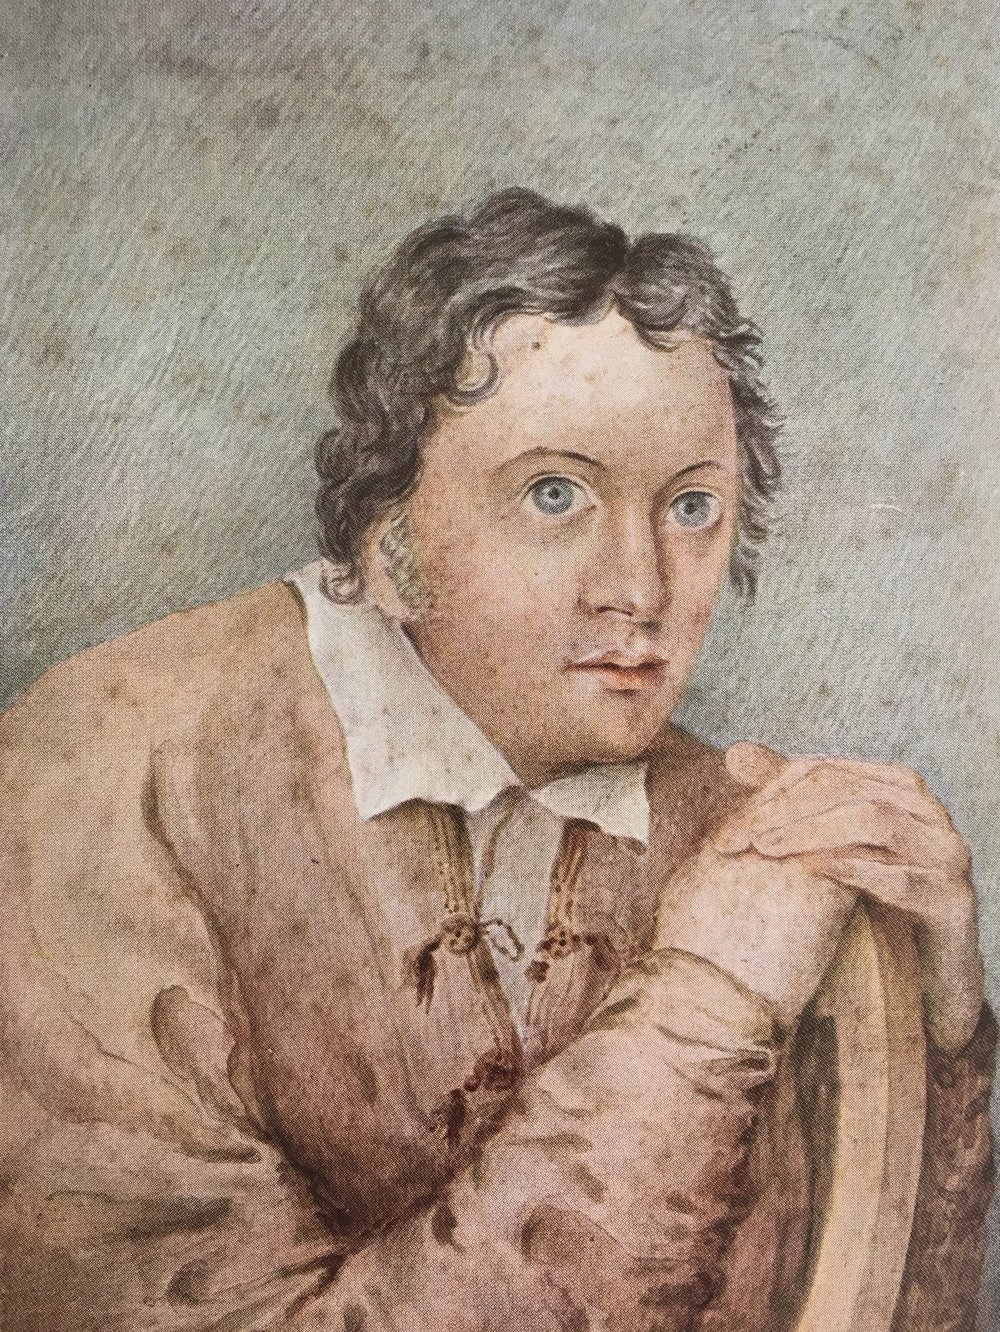 A drawing of Shelley by Edward Williams.  Some think it unflattering, but it is thought by many to be the most true to life image of Shelley in existence. It has none of the child-like qualities of the other paintings.